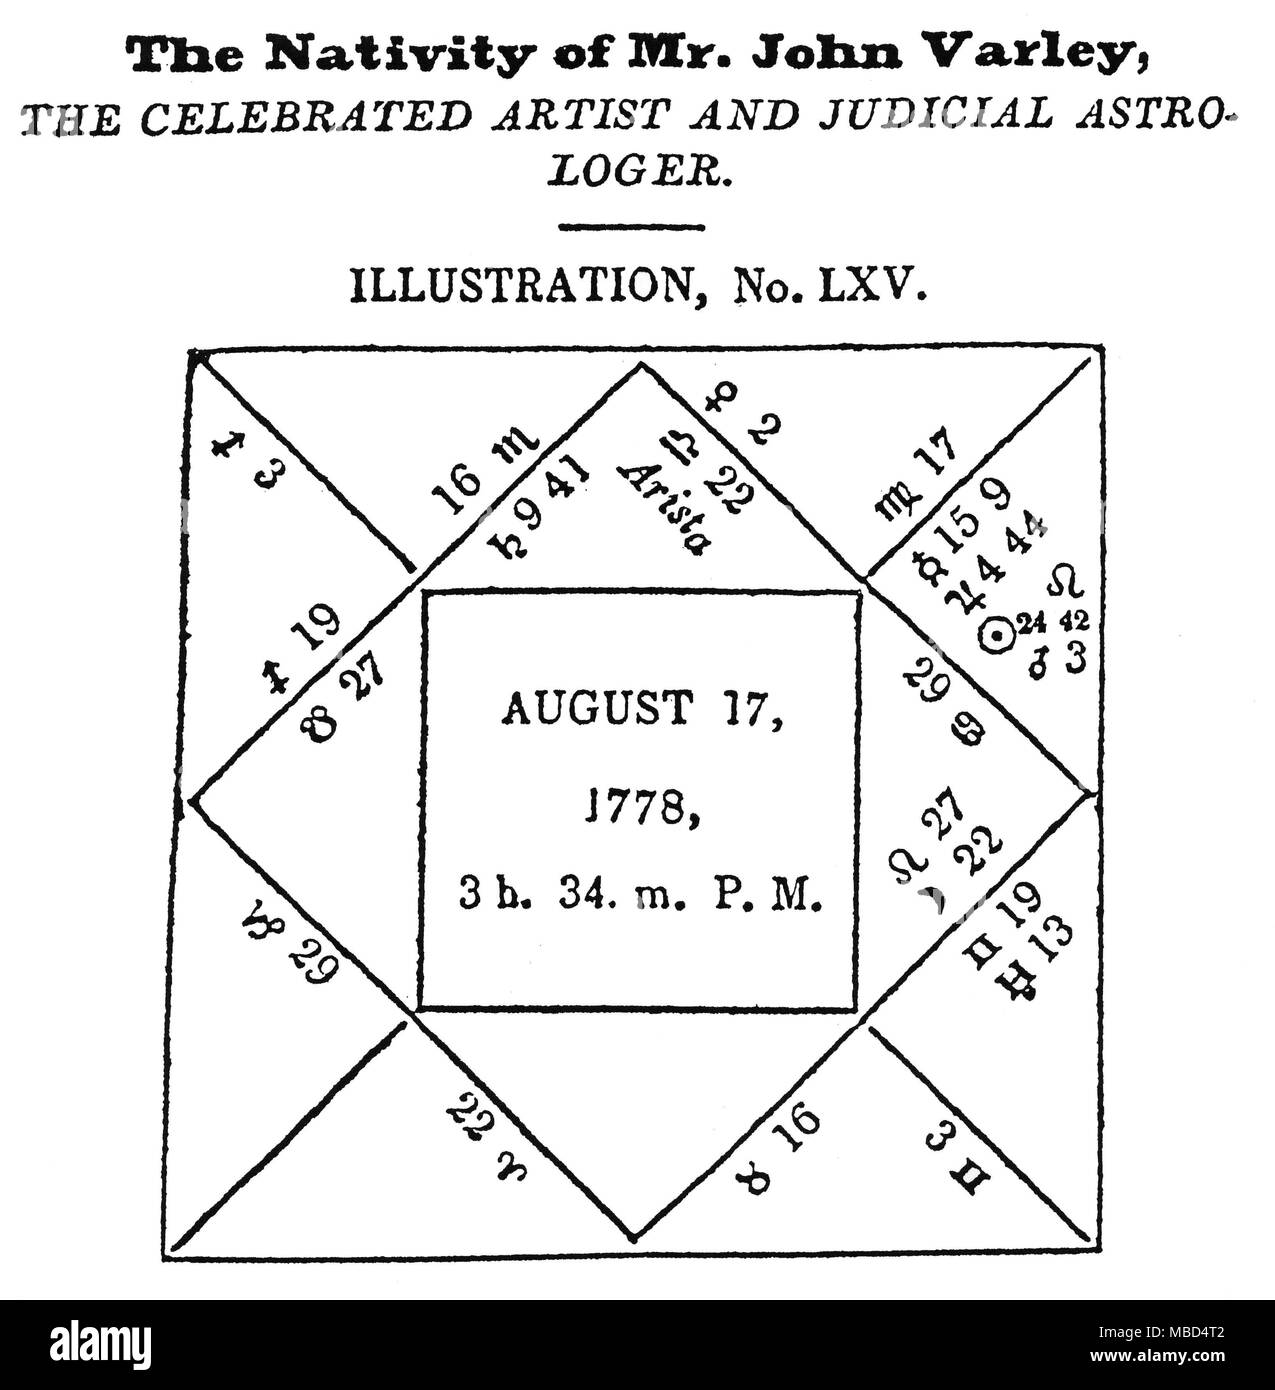 HOROSCOPES - JOHN VARLEY  This horoscope of the artist-astrologer, who was a friend of William Blake, was published as Illustration No. LXV, in the Straggling Astrologer of the Nineteenth Century 1848.  We observe that his Sun, in 24.42 Leo, is in the Astrologer's Arc (25=29 Leo).  Ironically, for an astrologer who did so much to study the effect of Uranus, we note that the position of this planet, given in his chart, is off by as much as 6 degrees.  Modern computing shows that Uranus was in 19.02 Gemini, on 17 August, 1778. - Stock Image